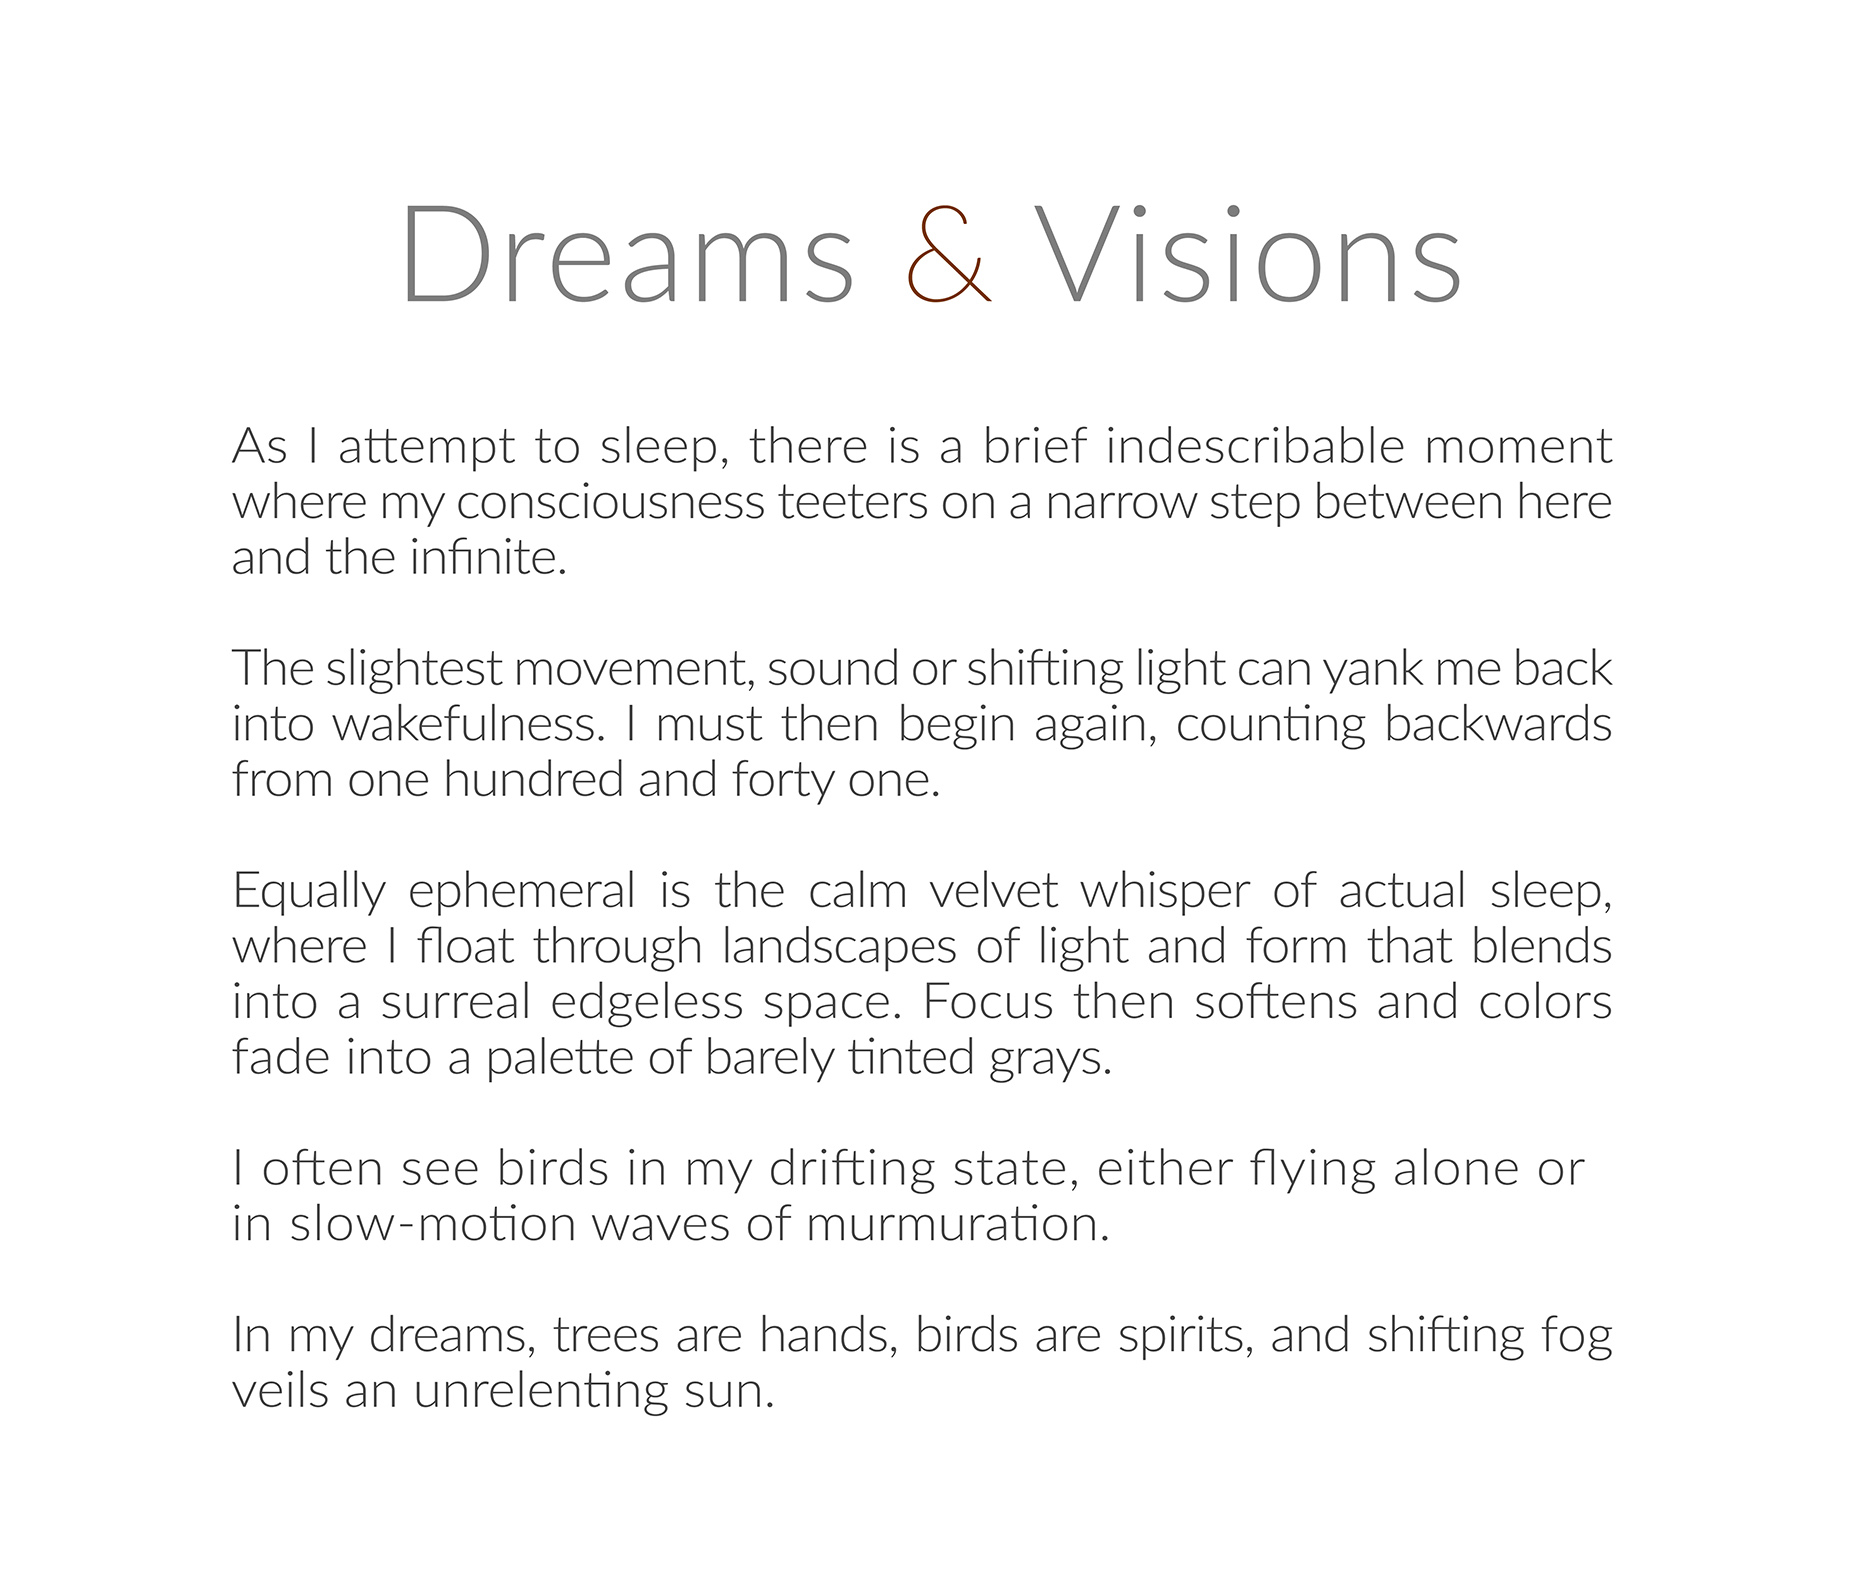 DreamsandVisionsstatement